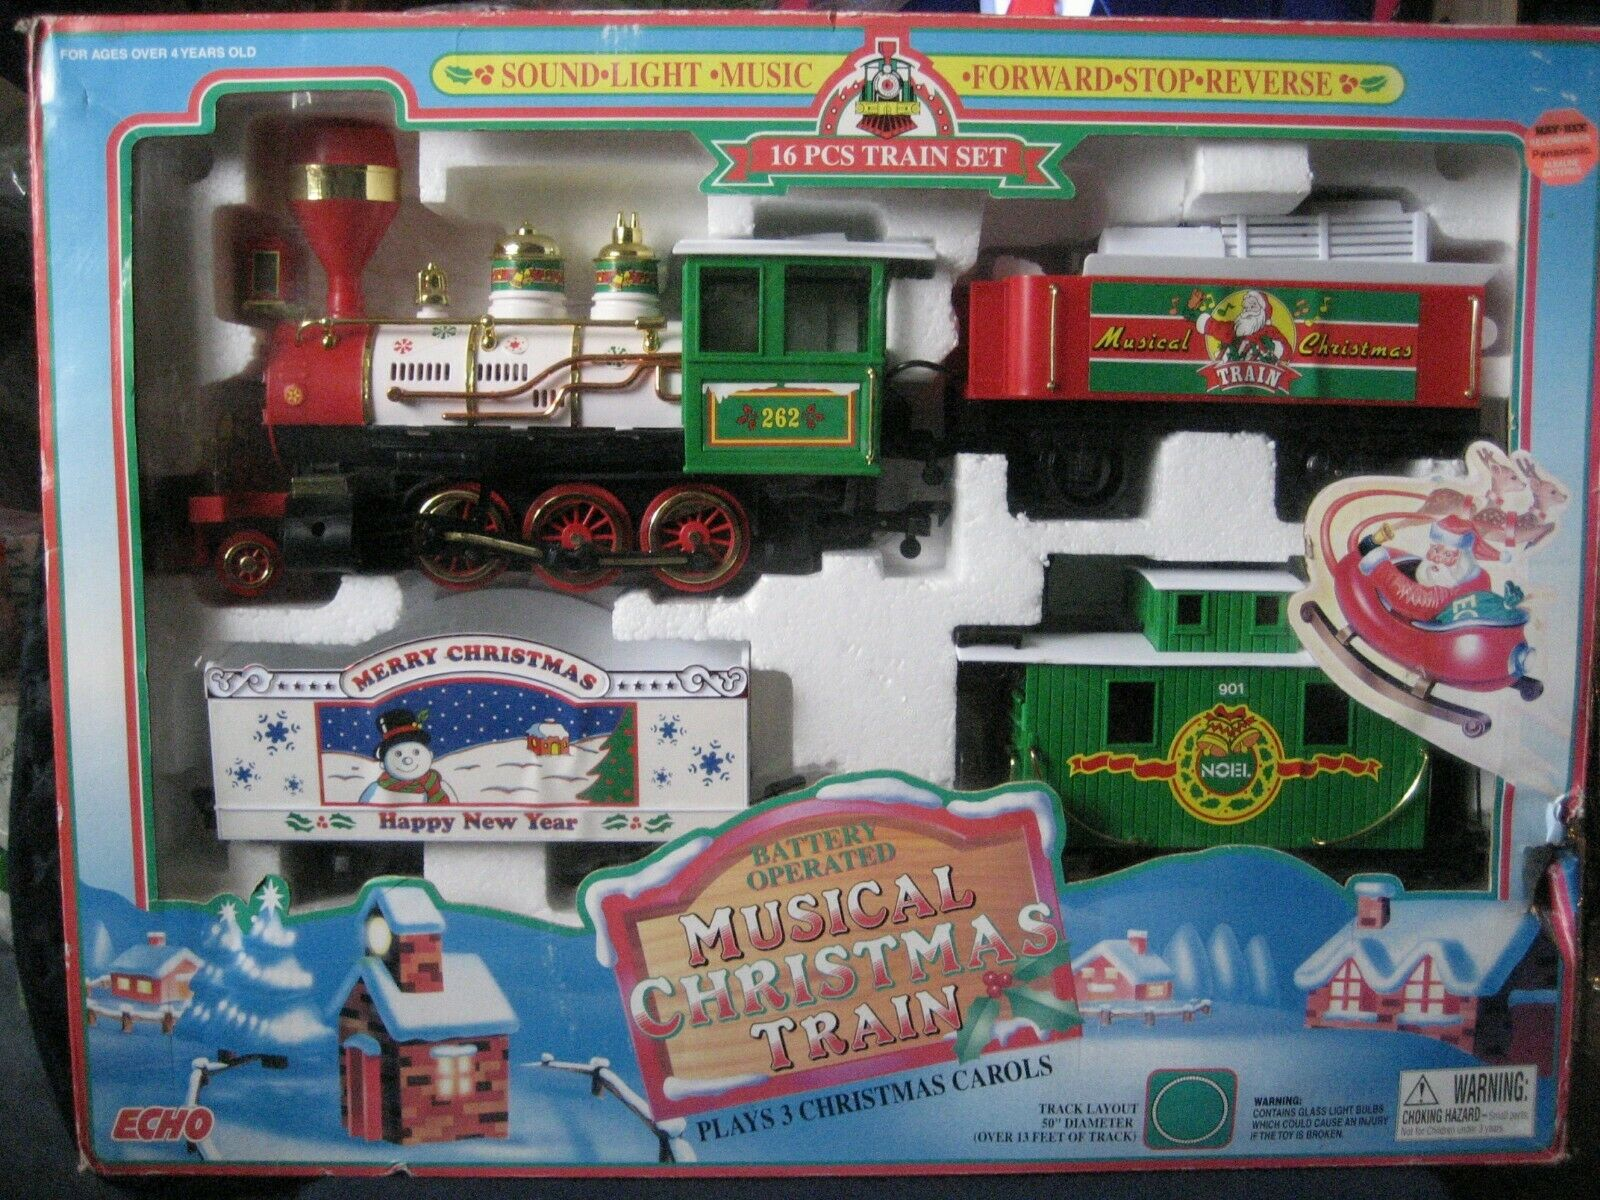 Echo Musical Christmas Train Set 16 Pcs.- Battery Operated - New In Box